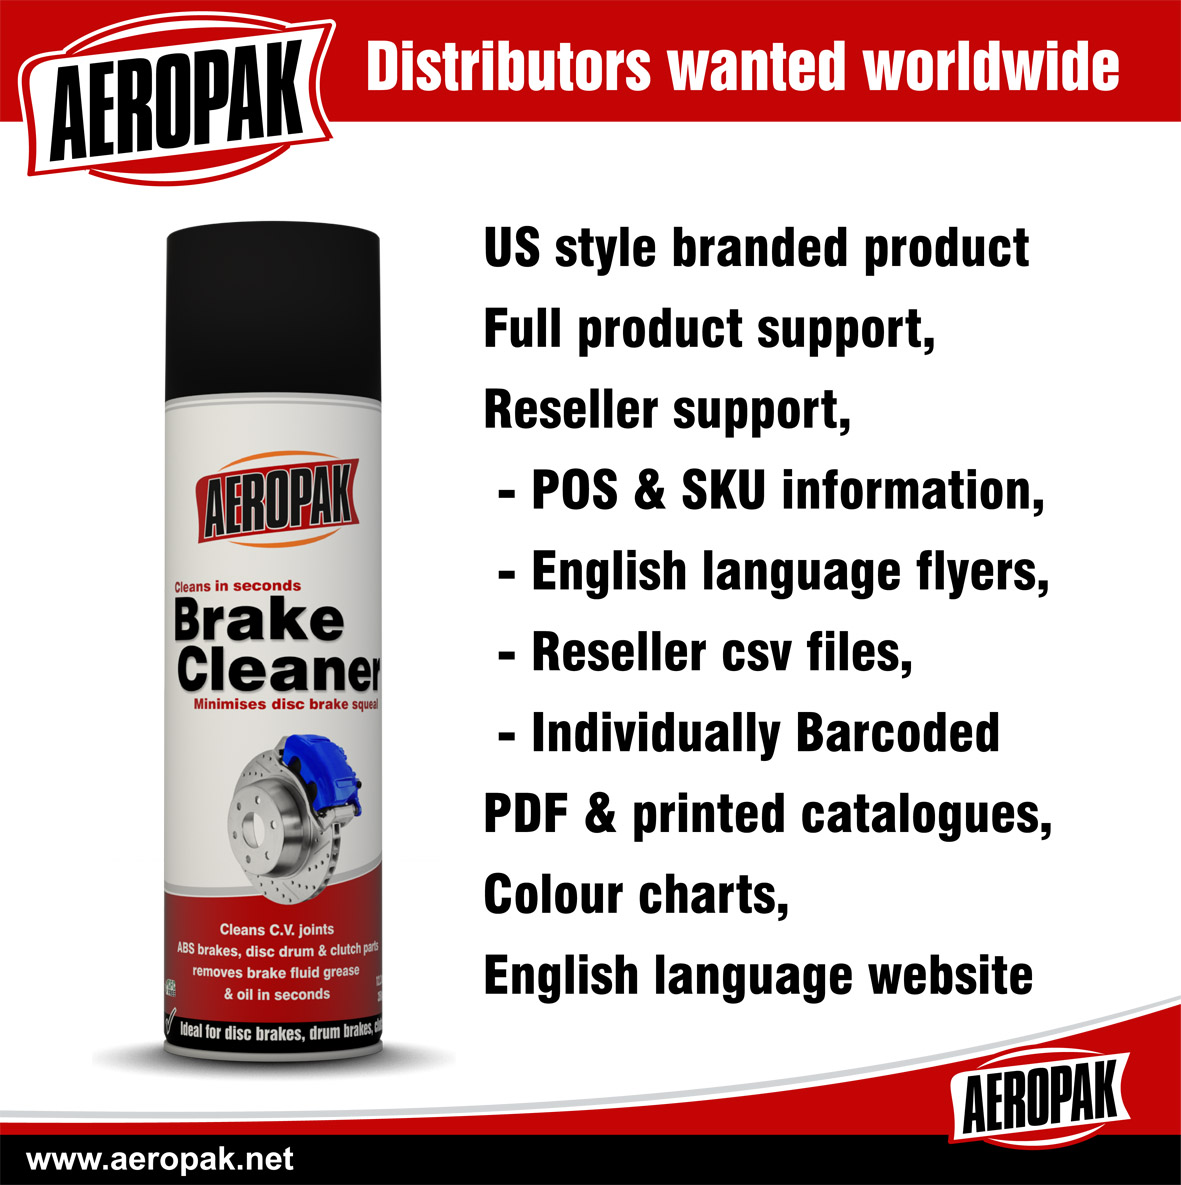 Aeropak Distributors wanted worldwide